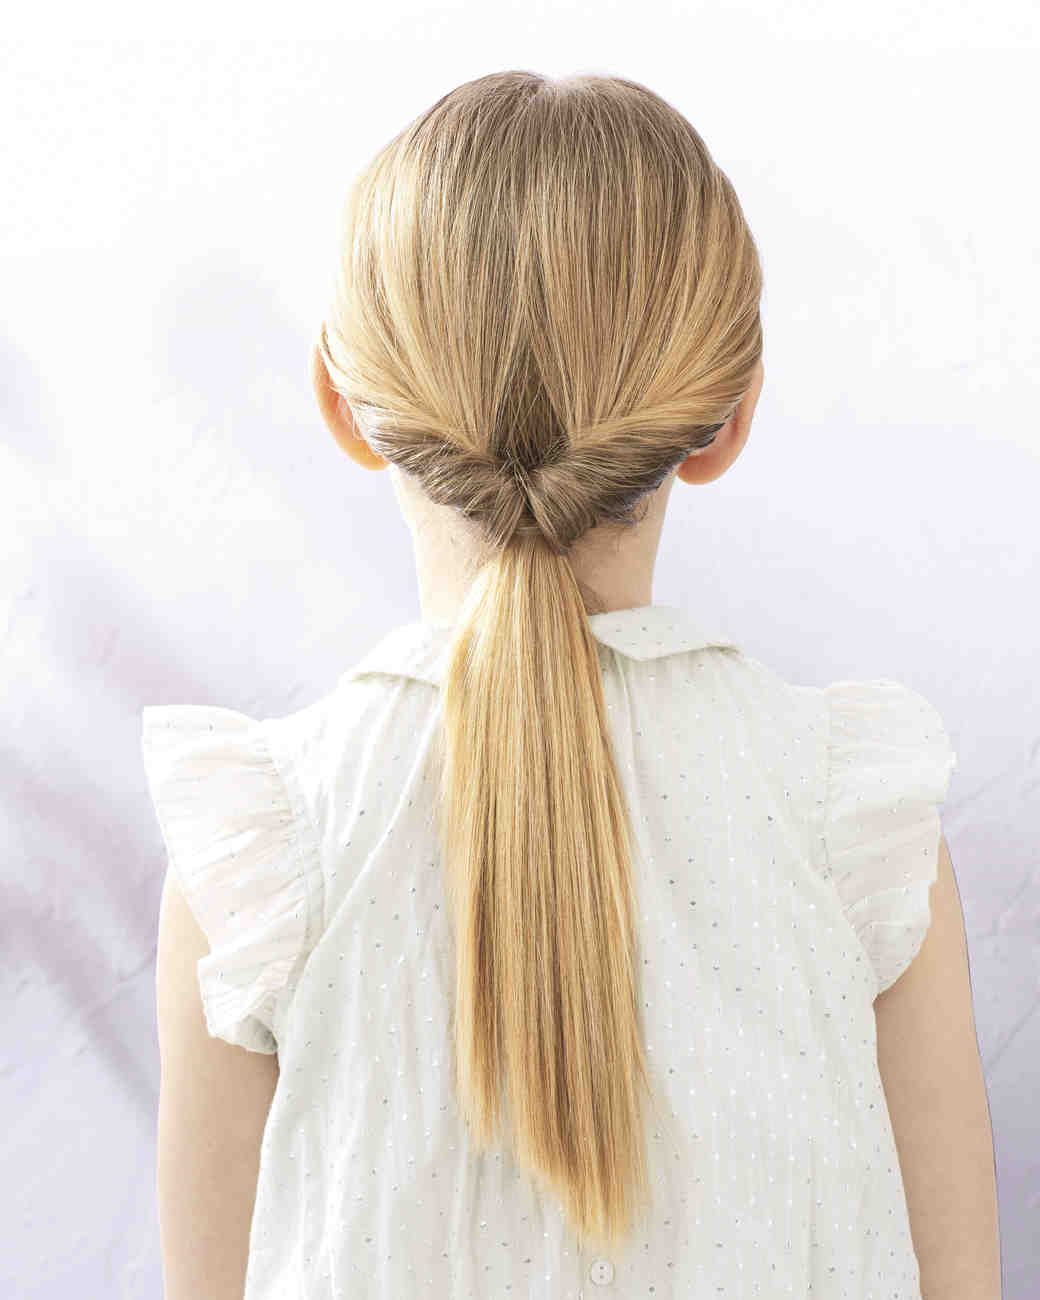 Flower Girl Hairstyles That Are Cute and Comfy | Martha Stewart Weddings